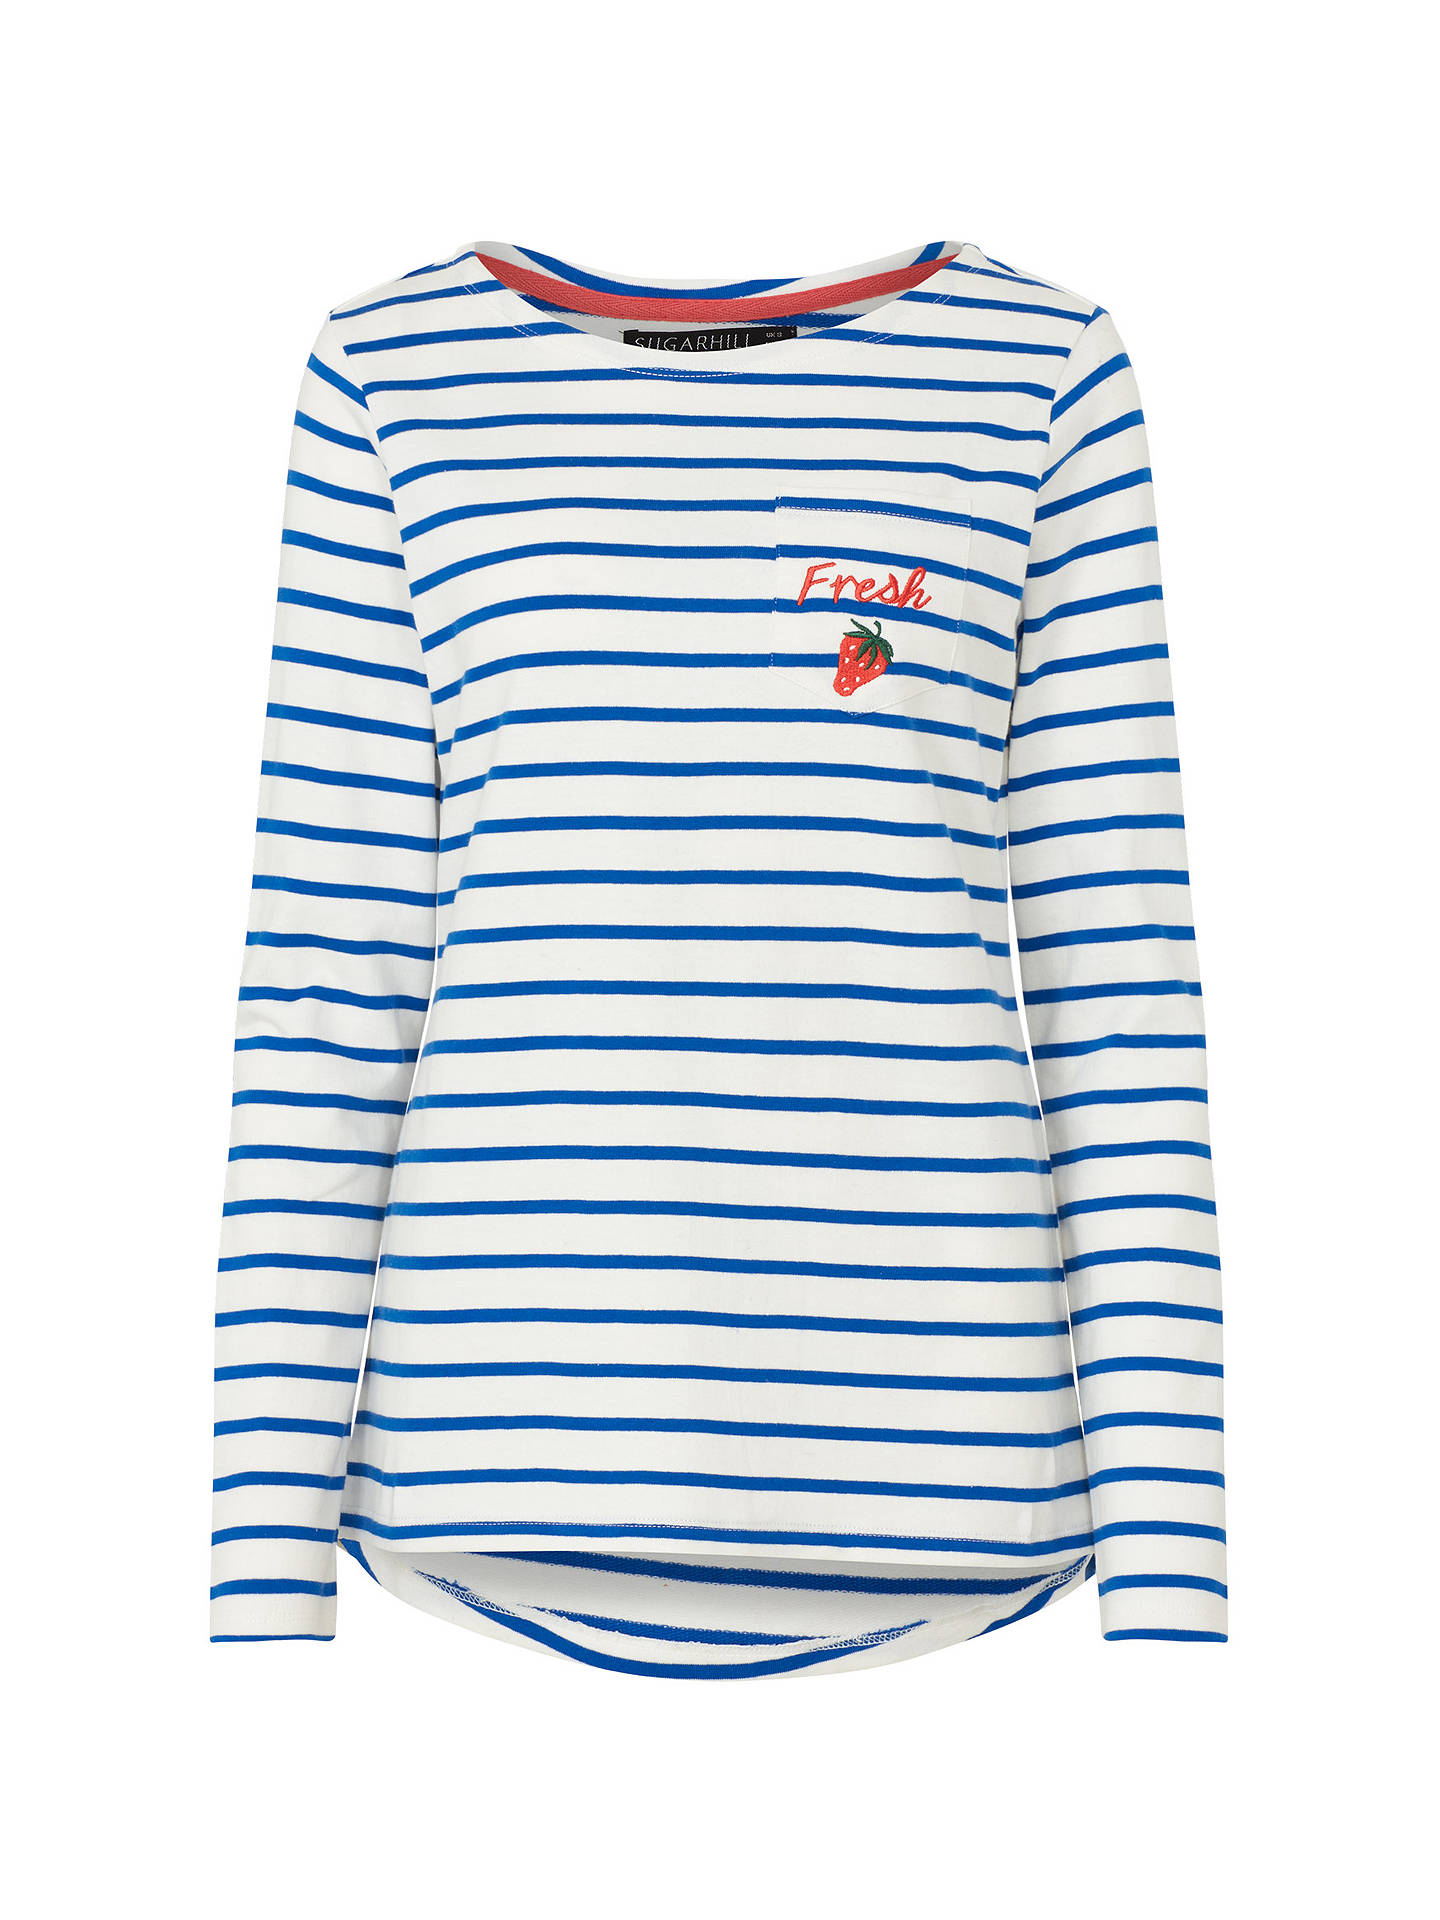 Buy Sugarhill Brighton Brighton Fresh Embroidered Top, White/Blue, 8 Online at johnlewis.com